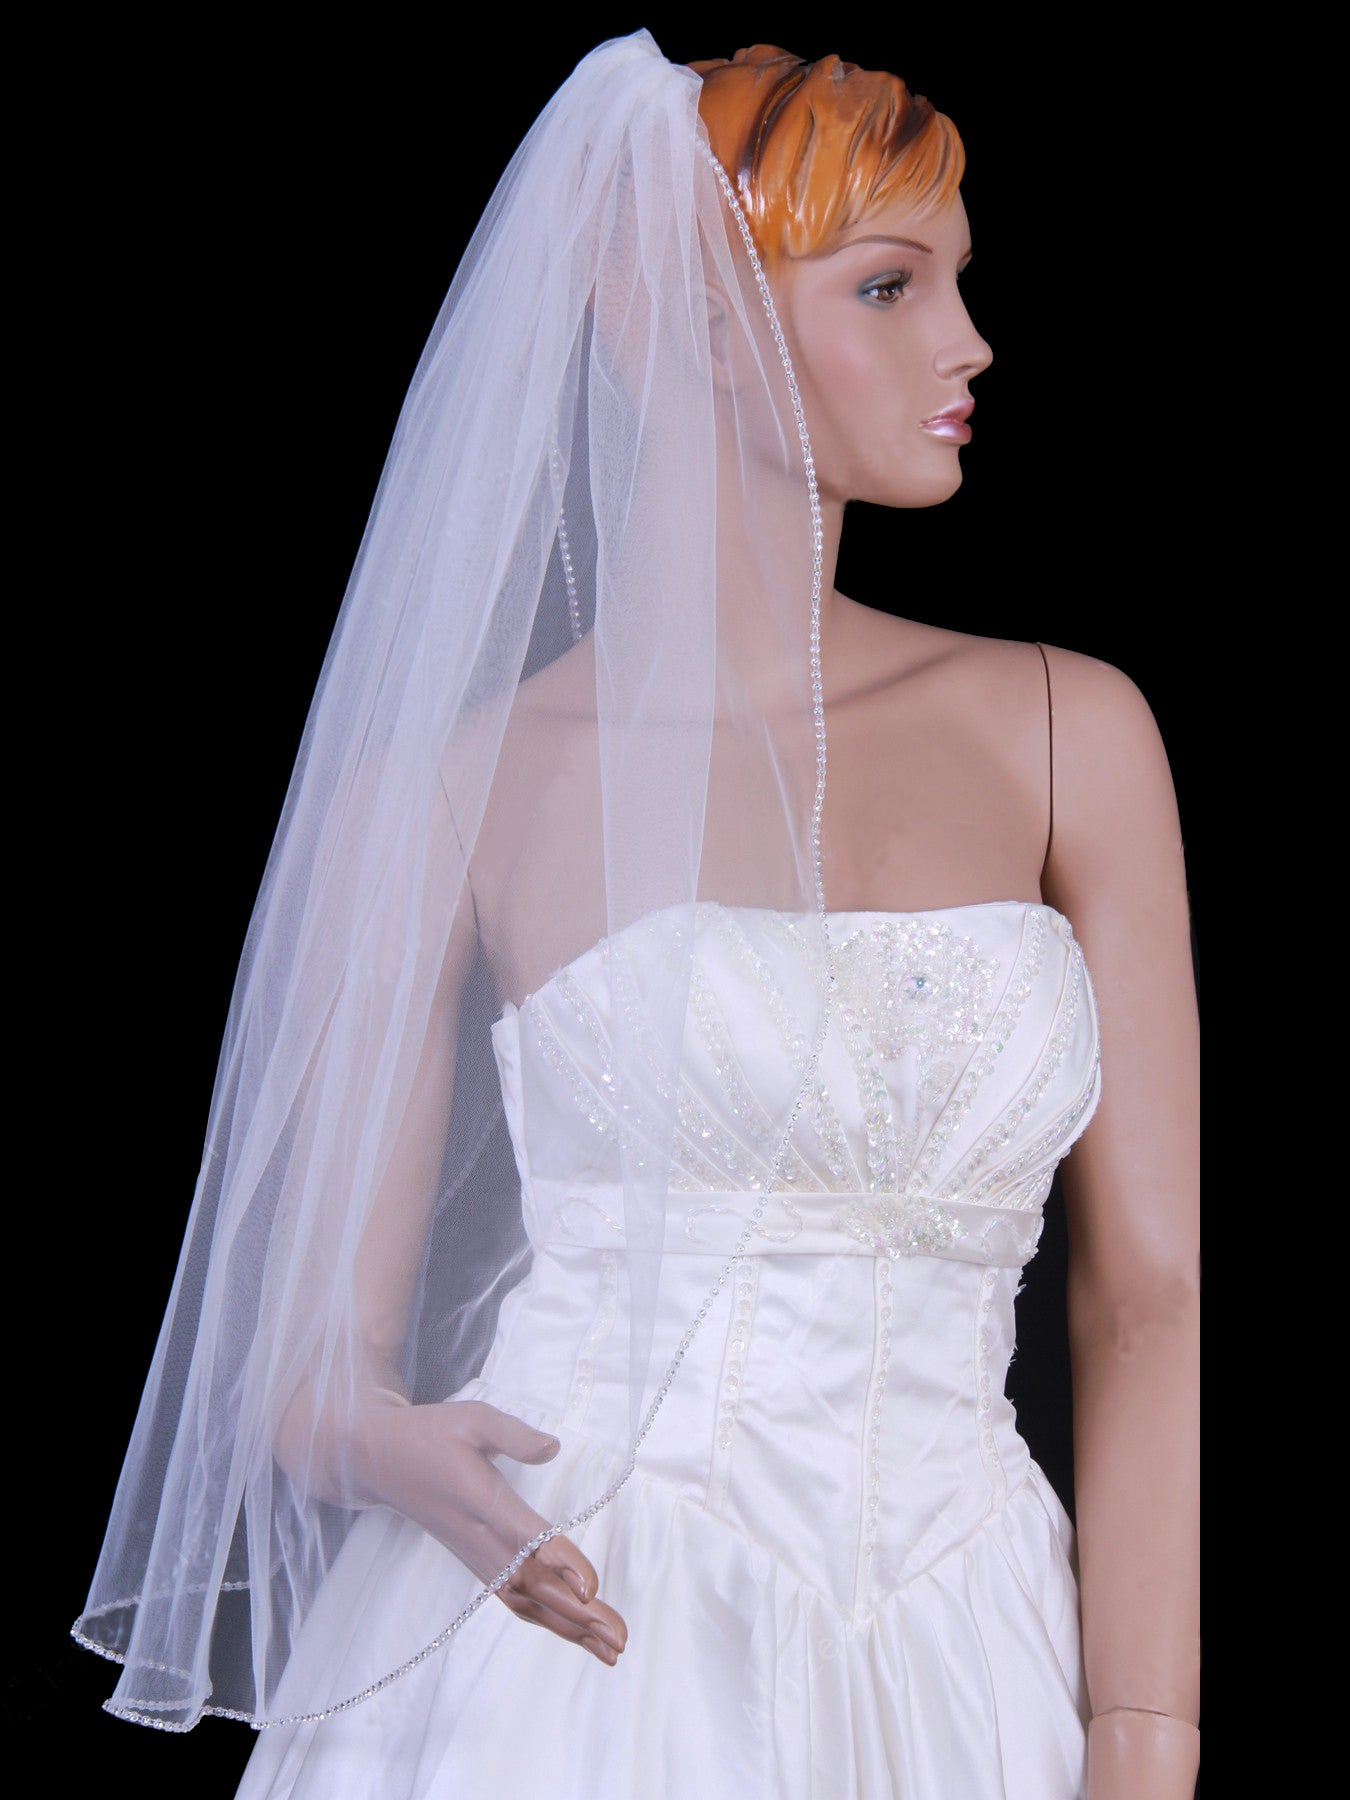 Tulle one tier elbow bridal wedding veil with beading Va012